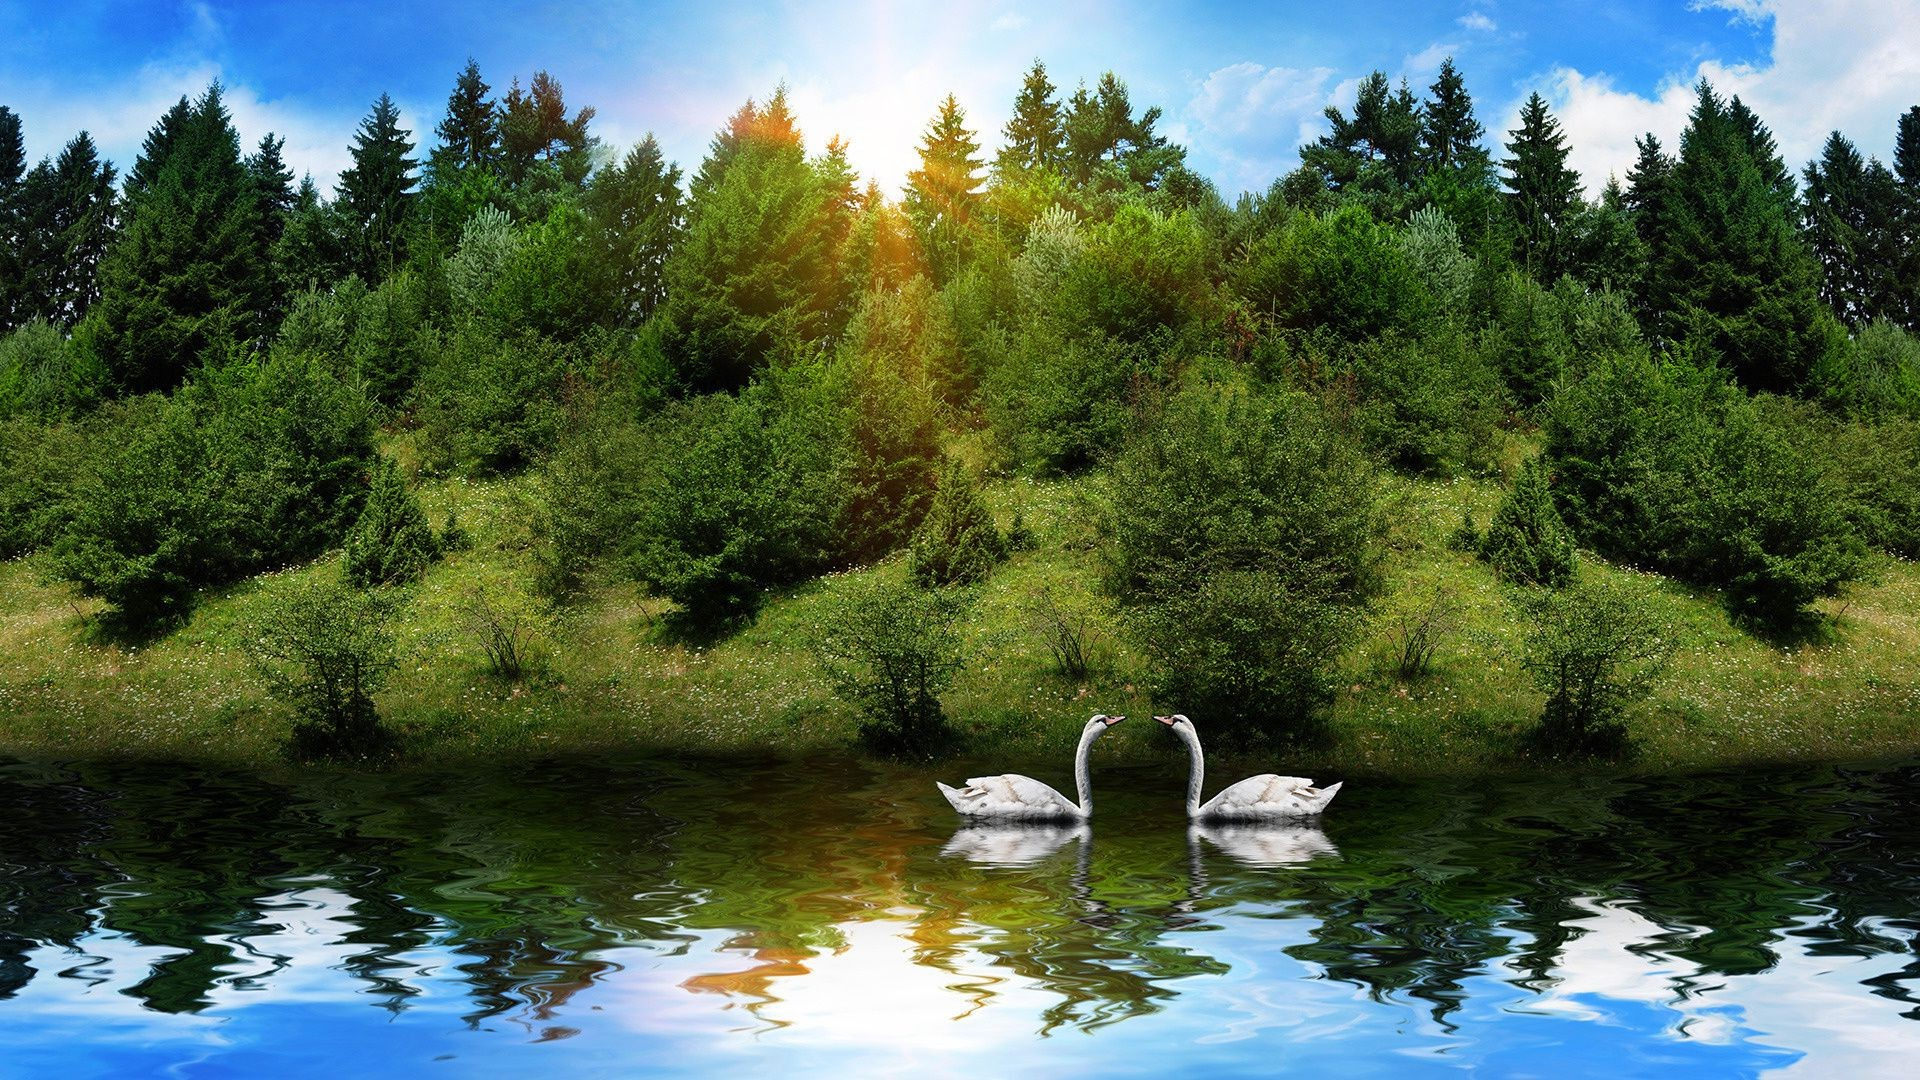 animals water lake river nature landscape tree wood park outdoors scenic summer travel beautiful leaf pool sky reflection fall mountain